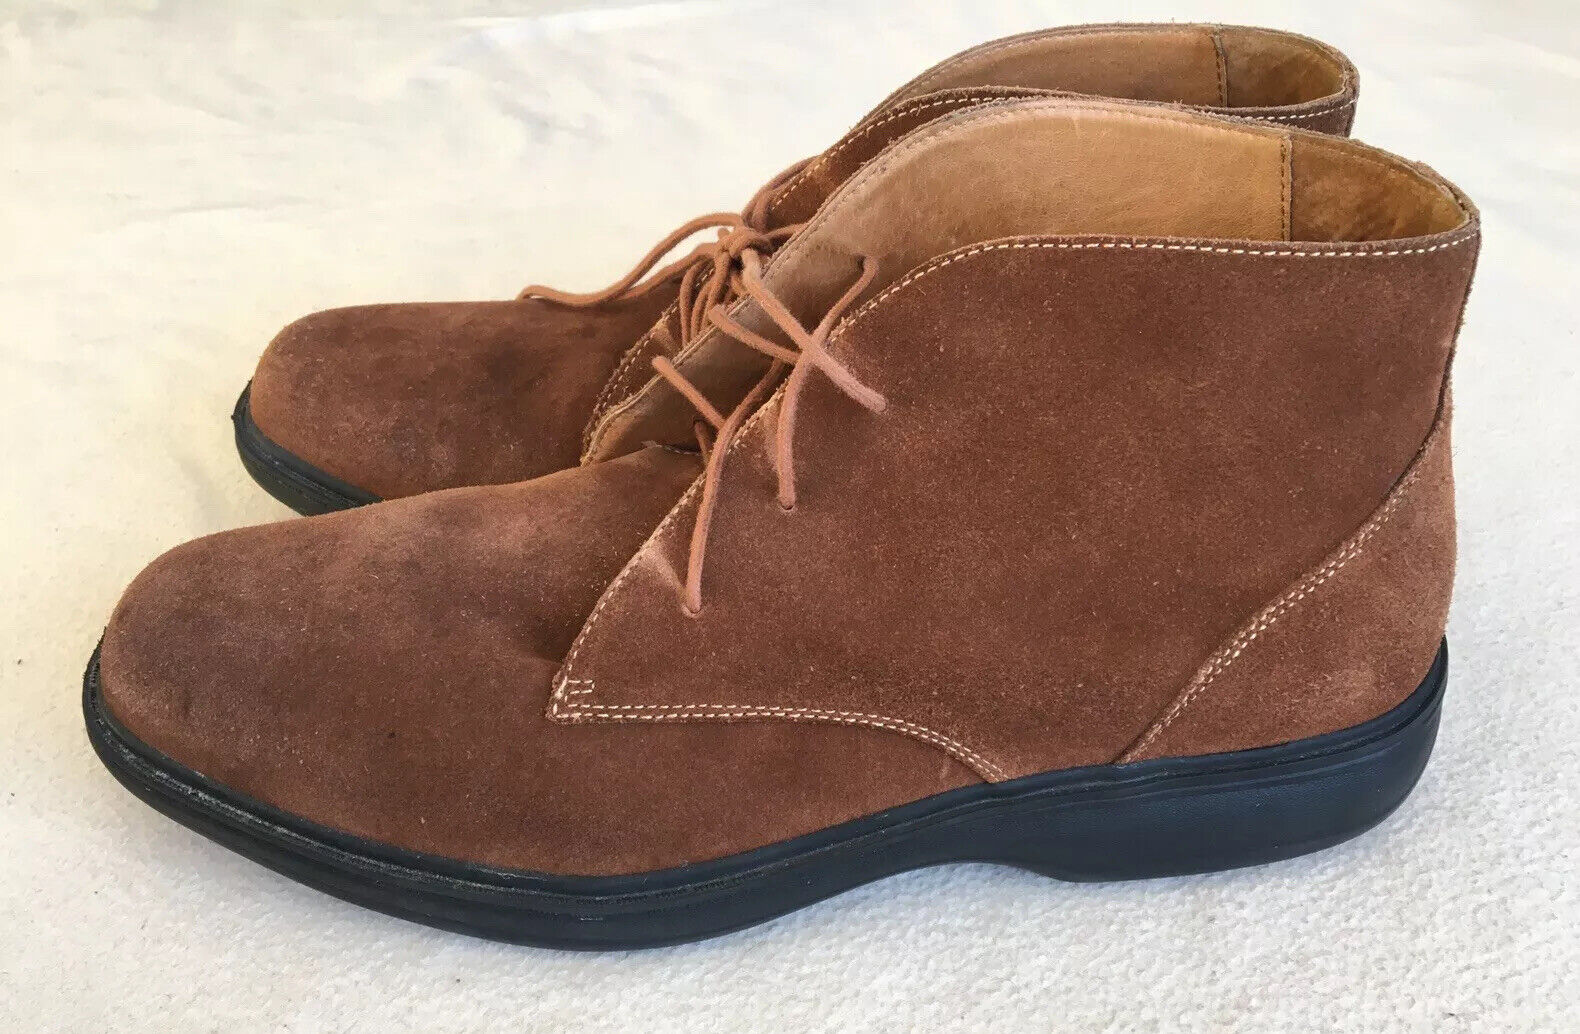 Dr. Comfort Ruk Brown Suede Leather Chukka Ankle Boots High Top Lace Up Size 14W